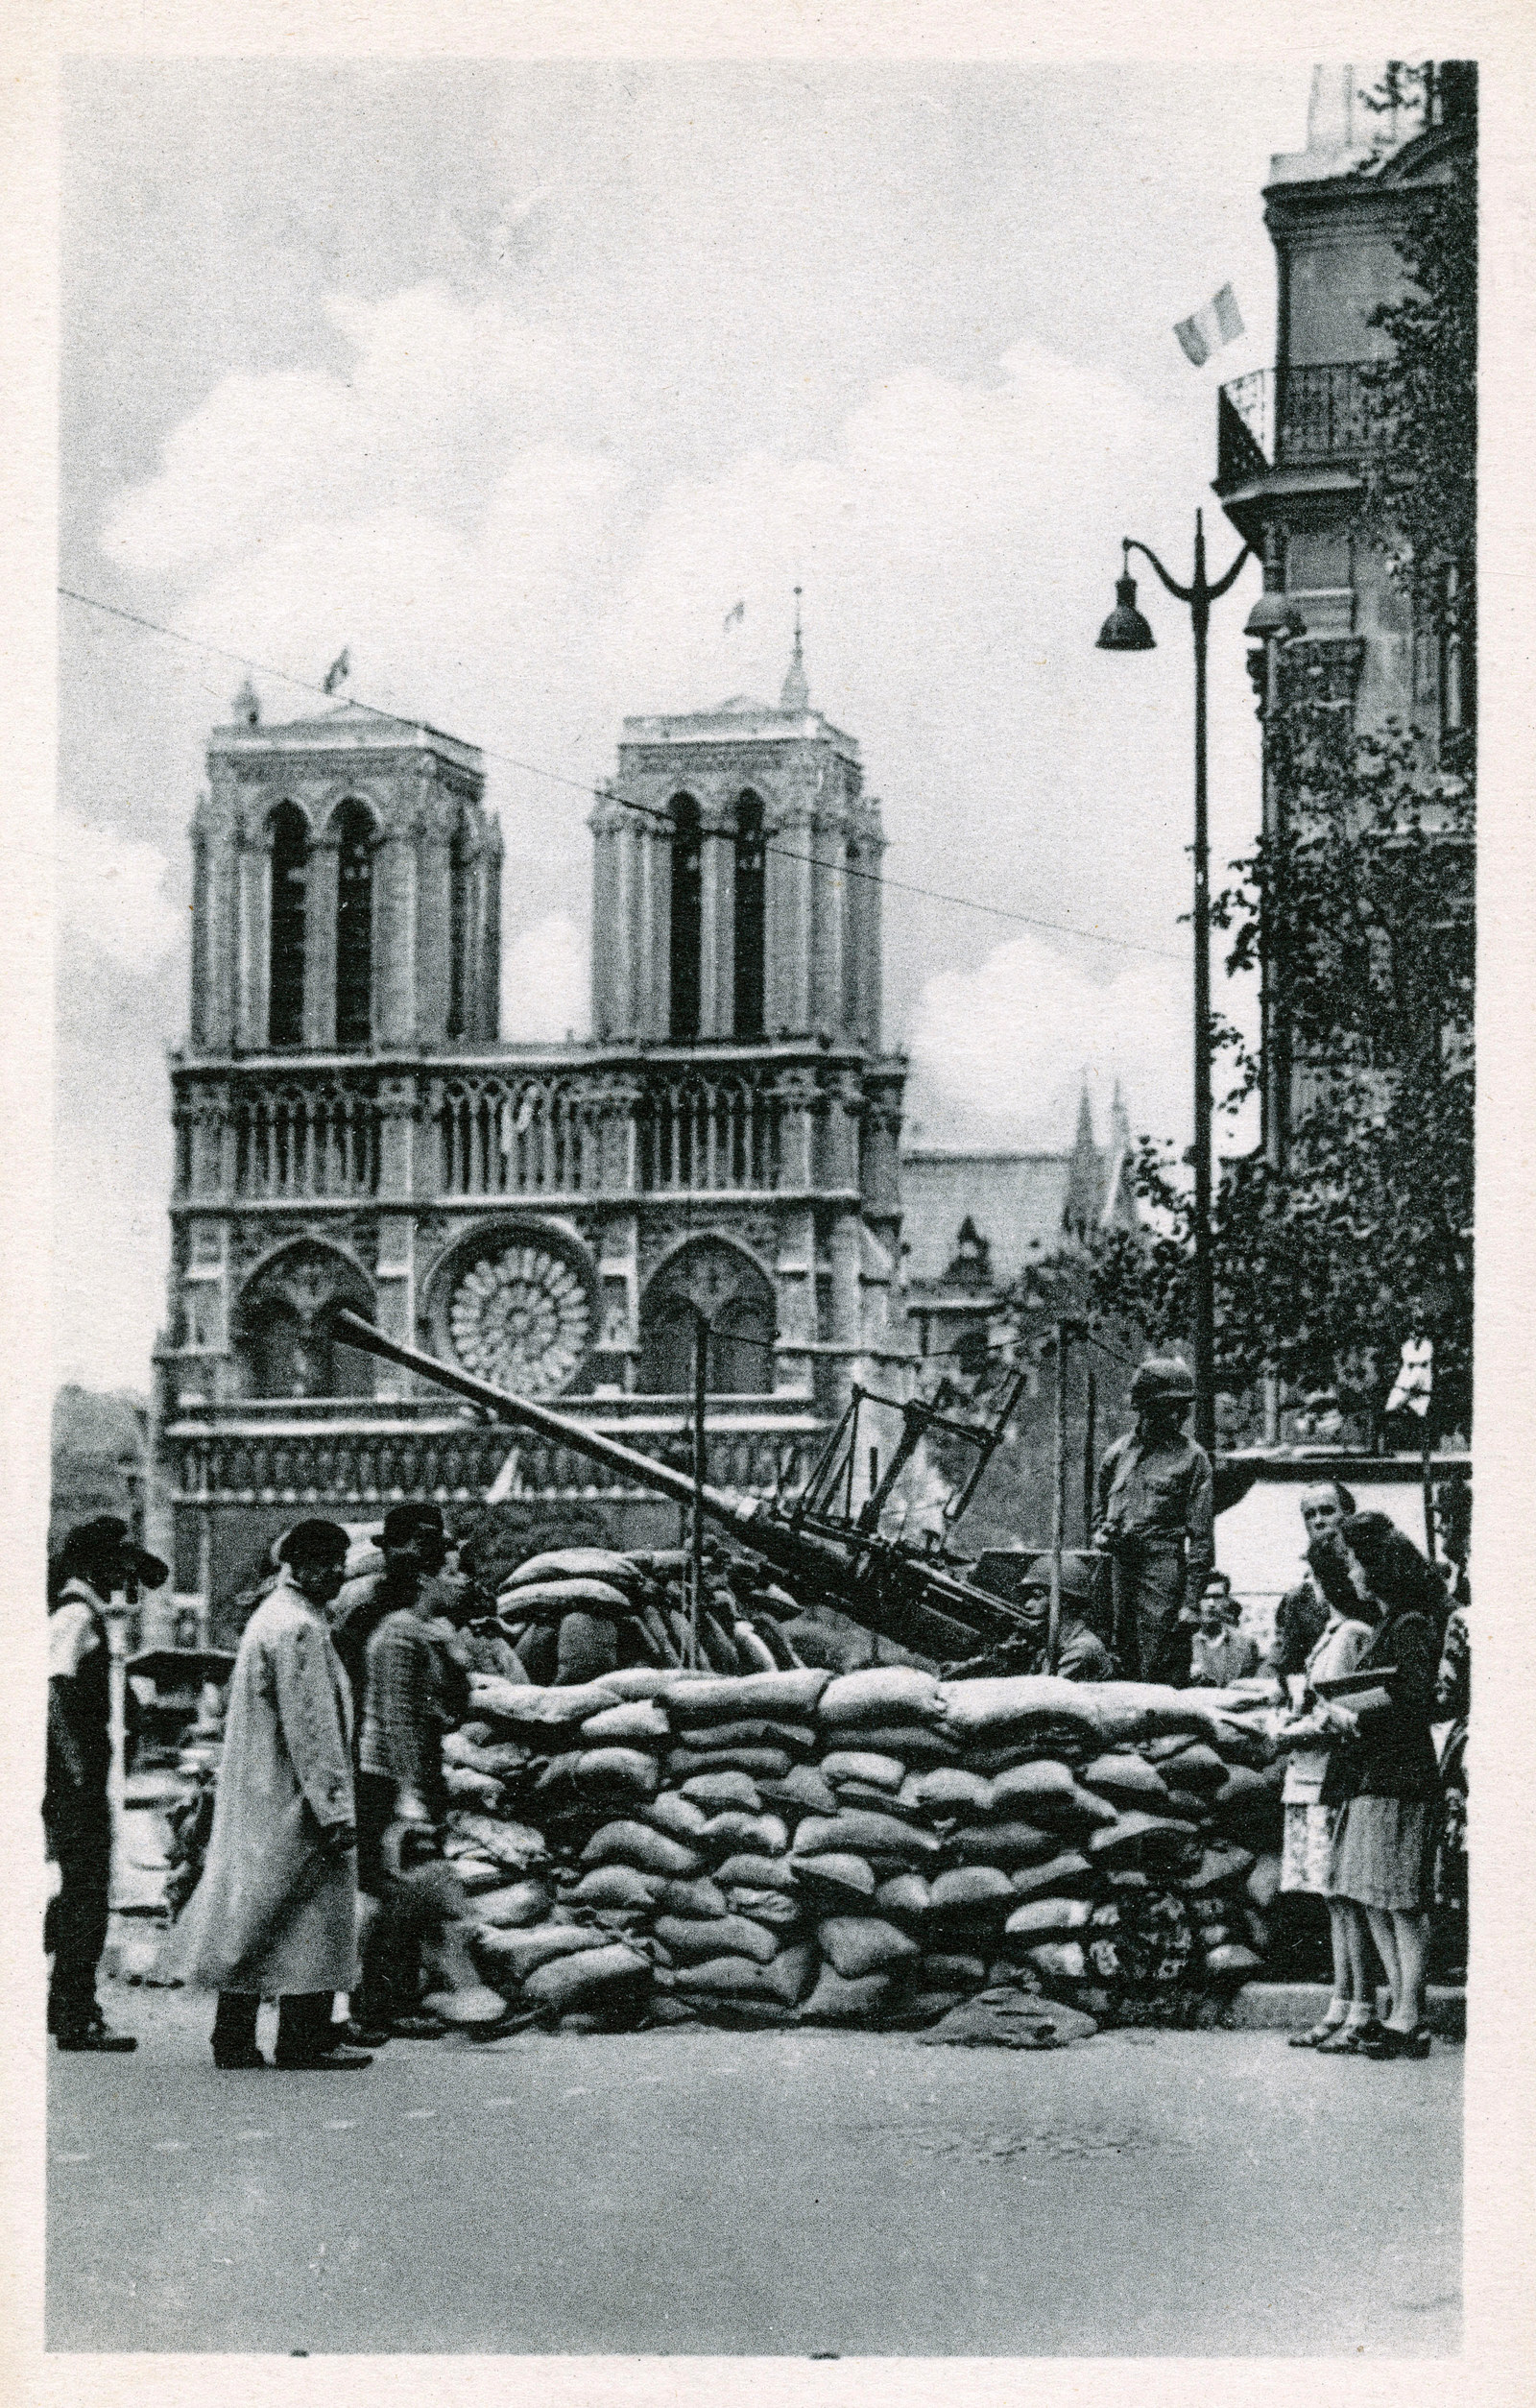 American anti-aircraft artillery in front of the cathedral during the Liberation of Paris, 1944.